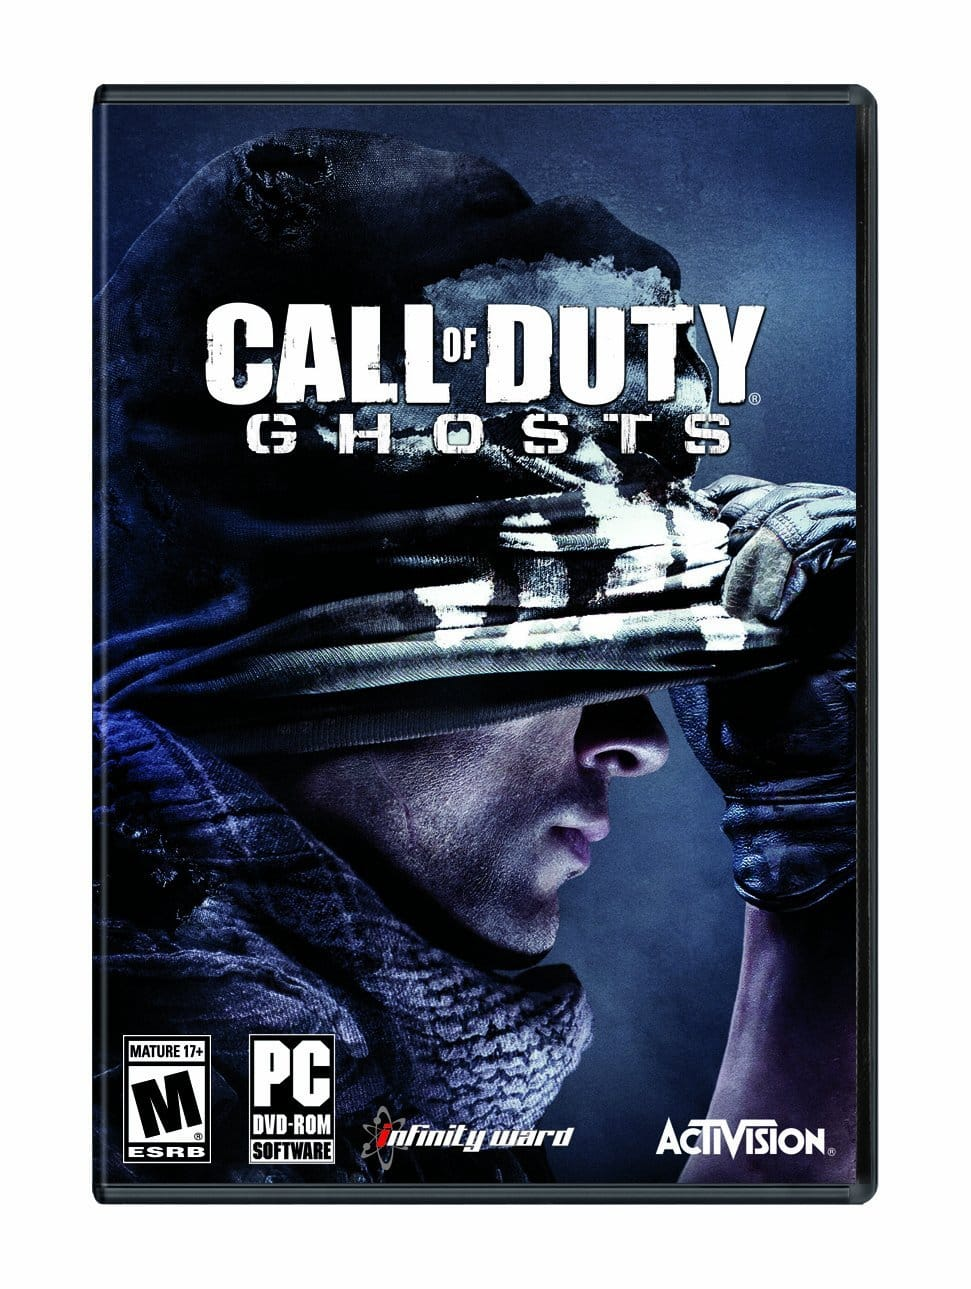 Call of Duty Ghosts PC $9.95